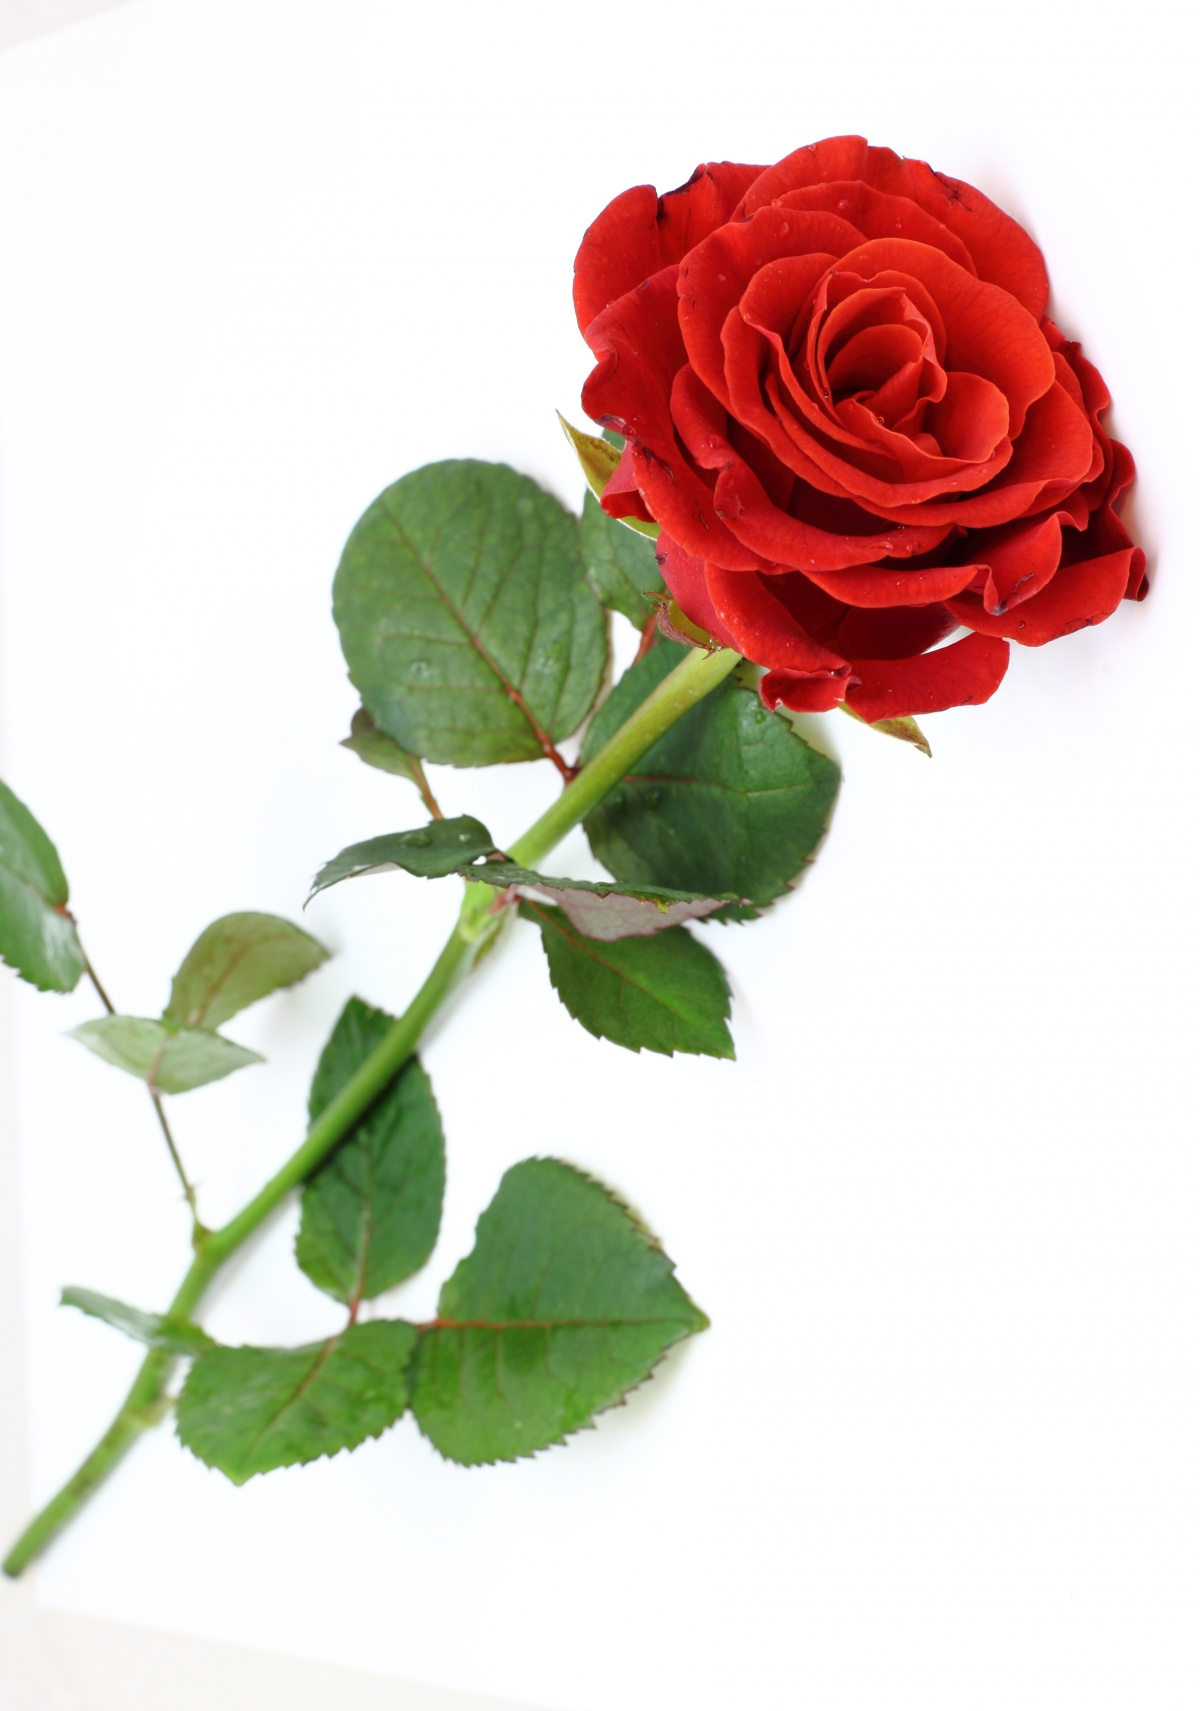 Arbeen images red rose hd wallpaper and background photos 38512668 arbeen images red rose hd wallpaper and background photos izmirmasajfo